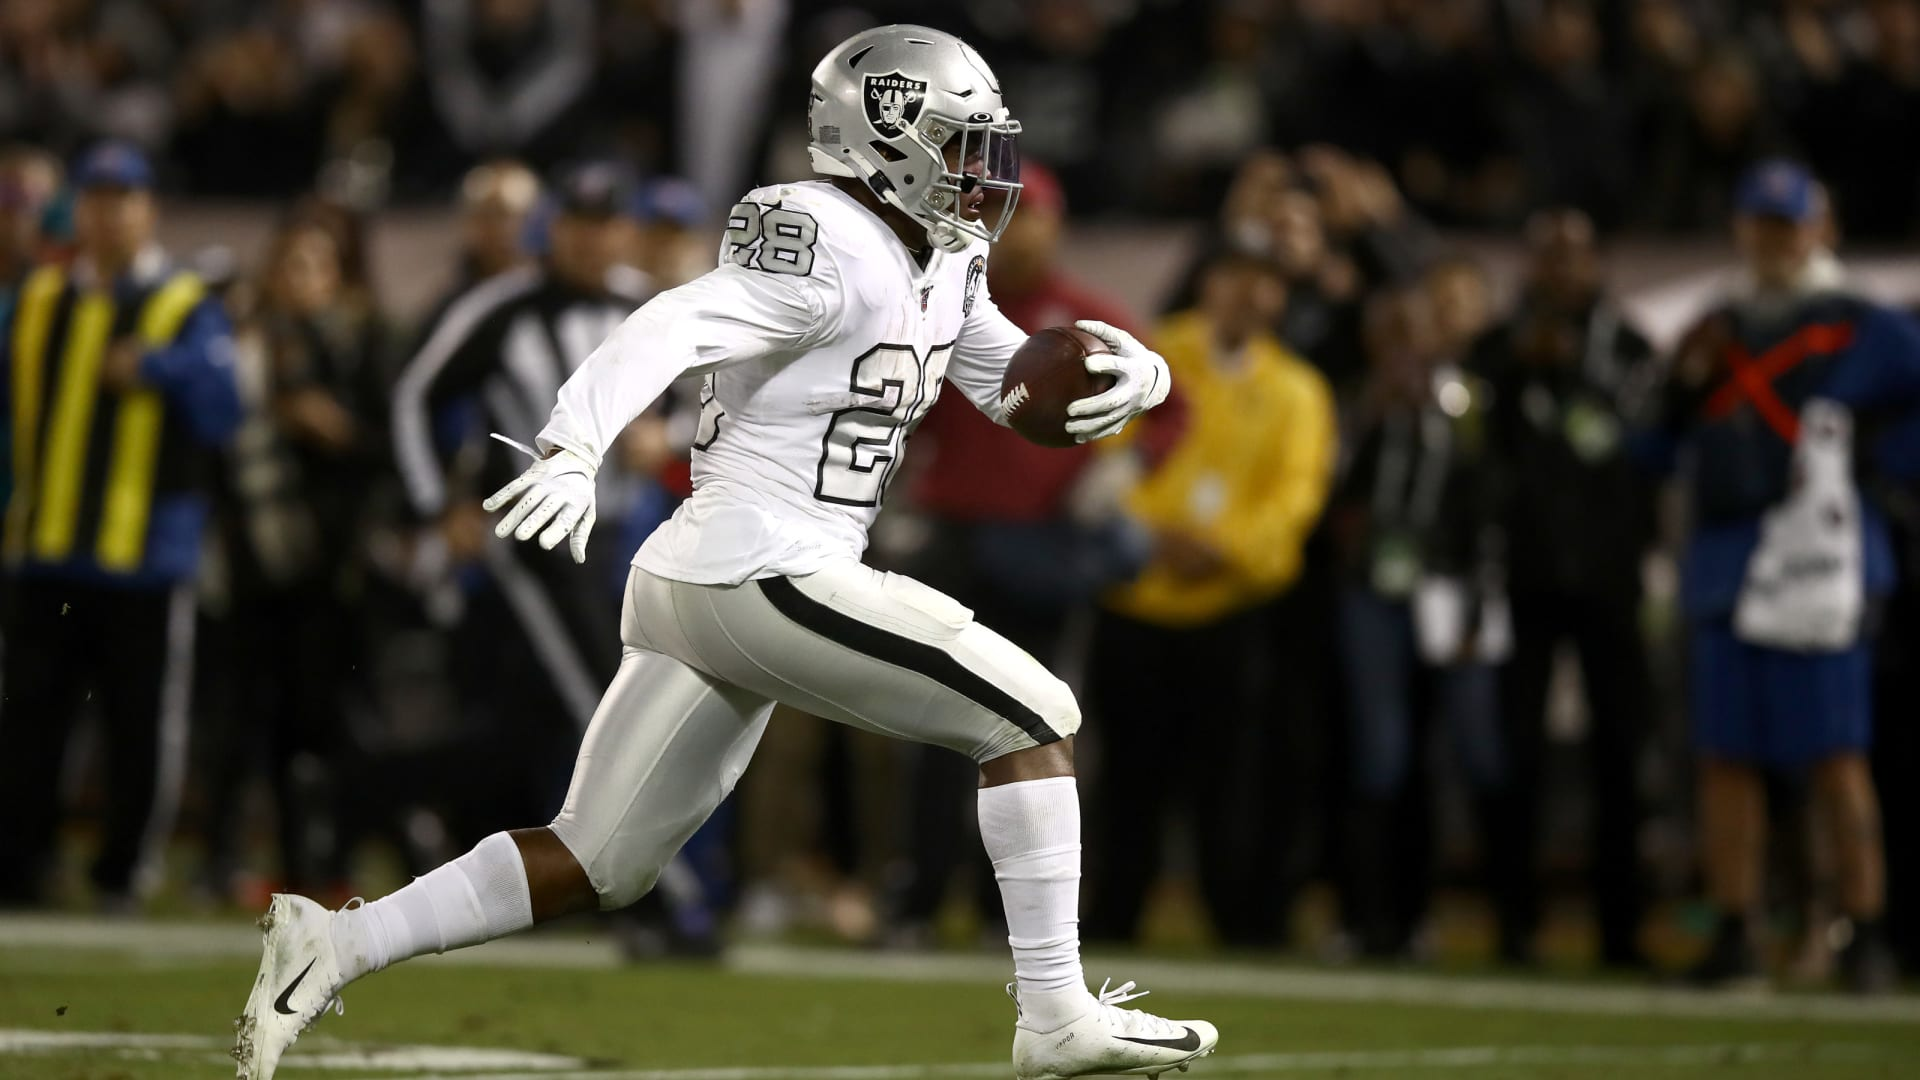 Las Vegas Raiders 2019 draft class to be even more impactful in 2020